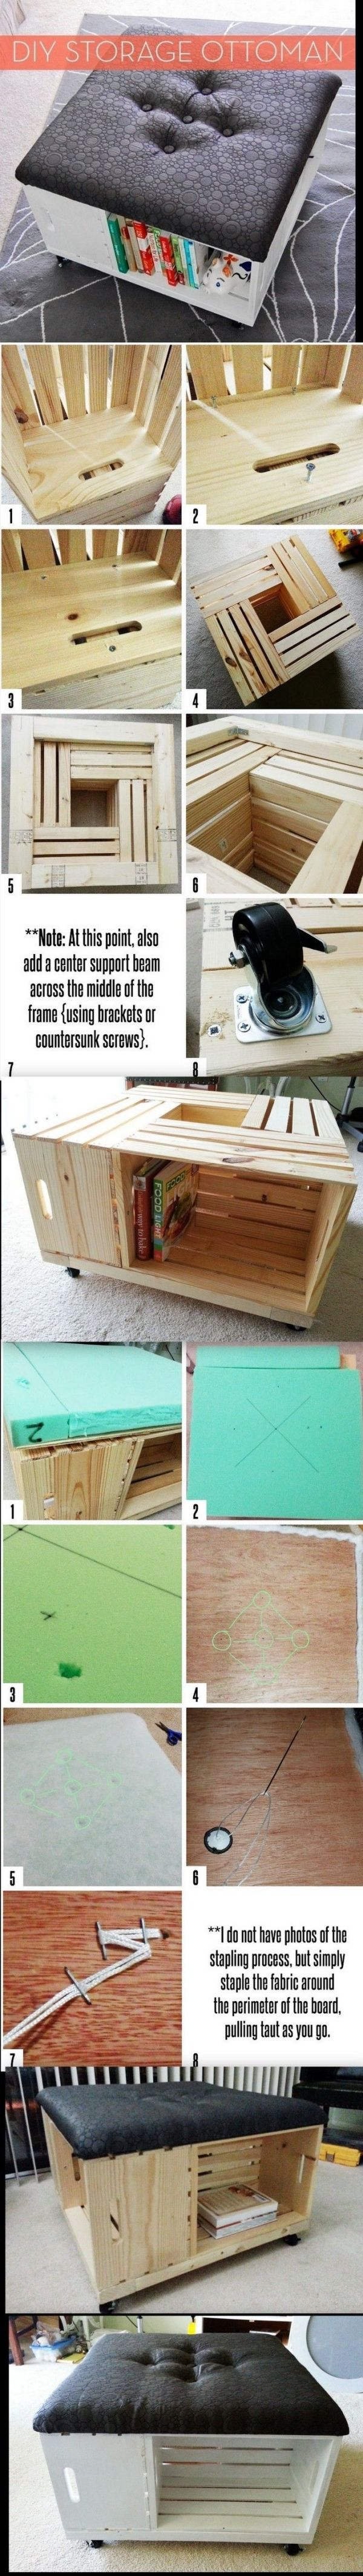 Diy Storage Ottoman With Wheels By Forgetaboutme Diy Storage